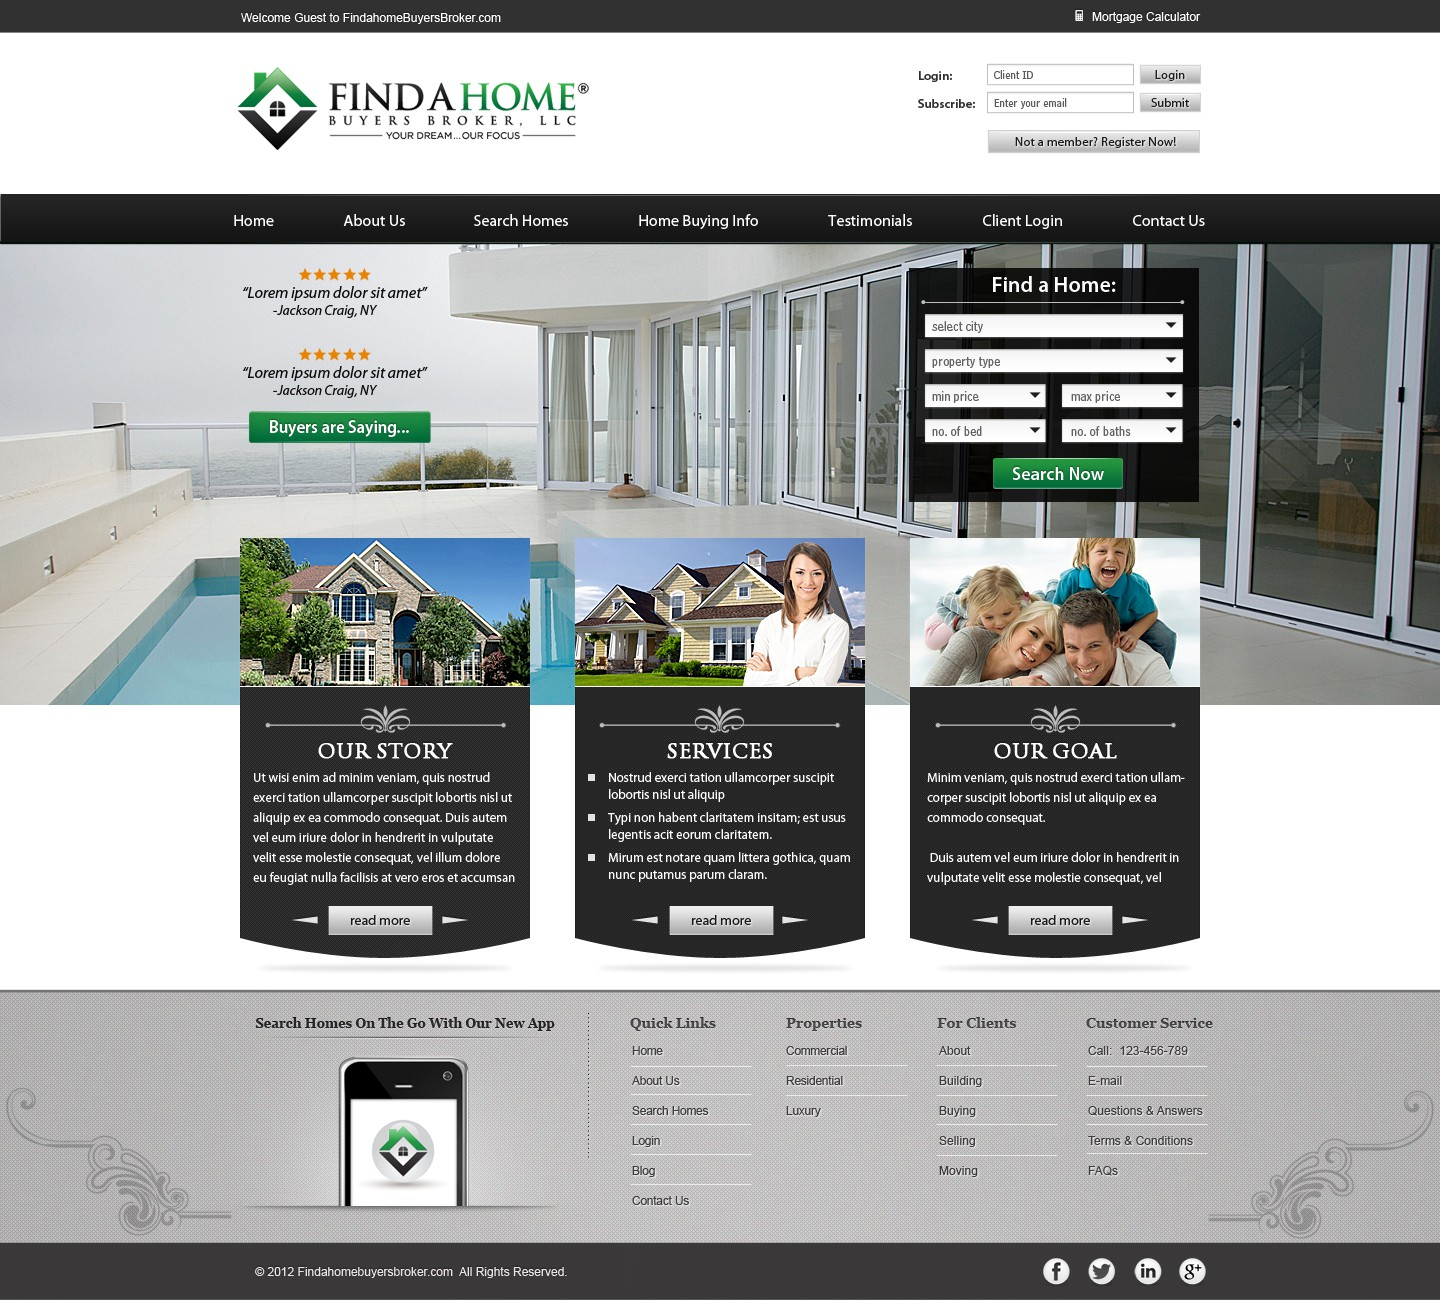 **Guaranteed $$ to winner** WEBSITE: FINDAHOME BUYERS BROKER, LLC